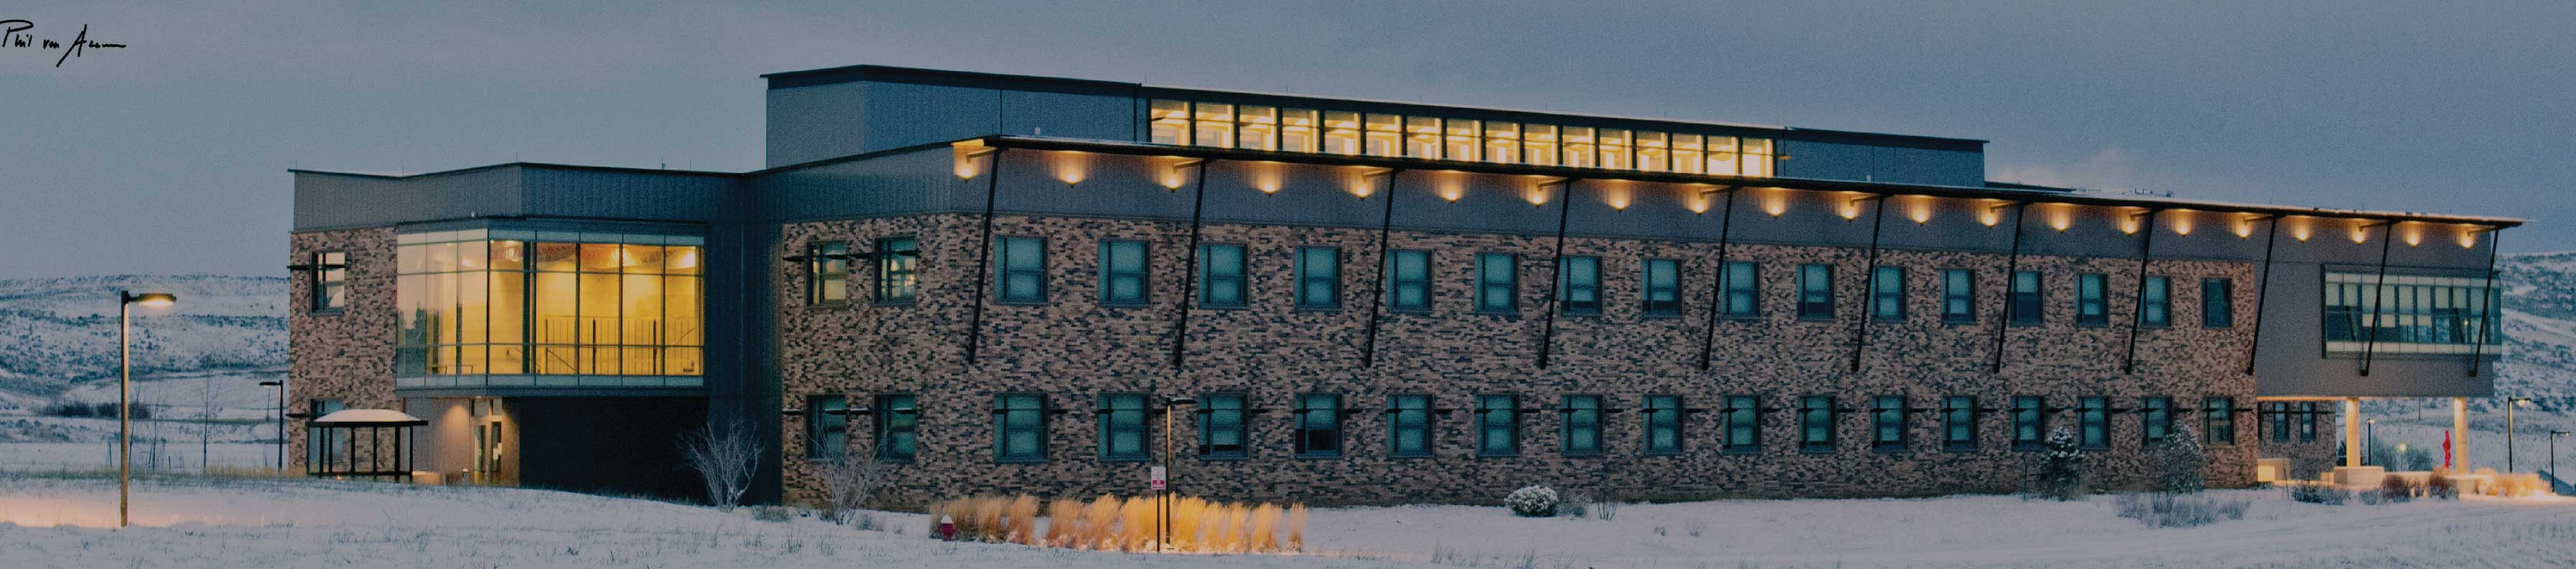 Exterior of the back CNCC building in the winter at night all lit up.